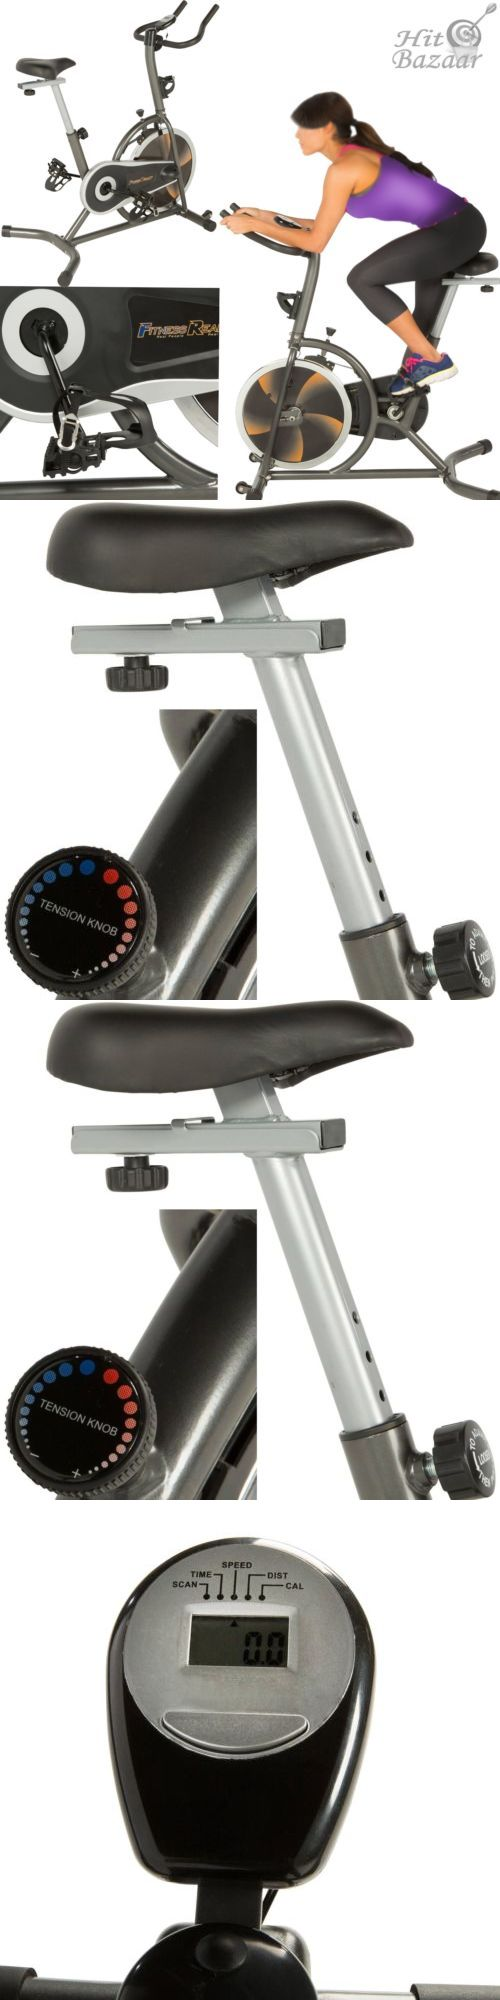 Exercise Bikes 58102: Exercise Bike Indoor Trainer Stationary Upright Bicycle Home Gym Cardio Machine -> BUY IT NOW ONLY: $147.18 on eBay!